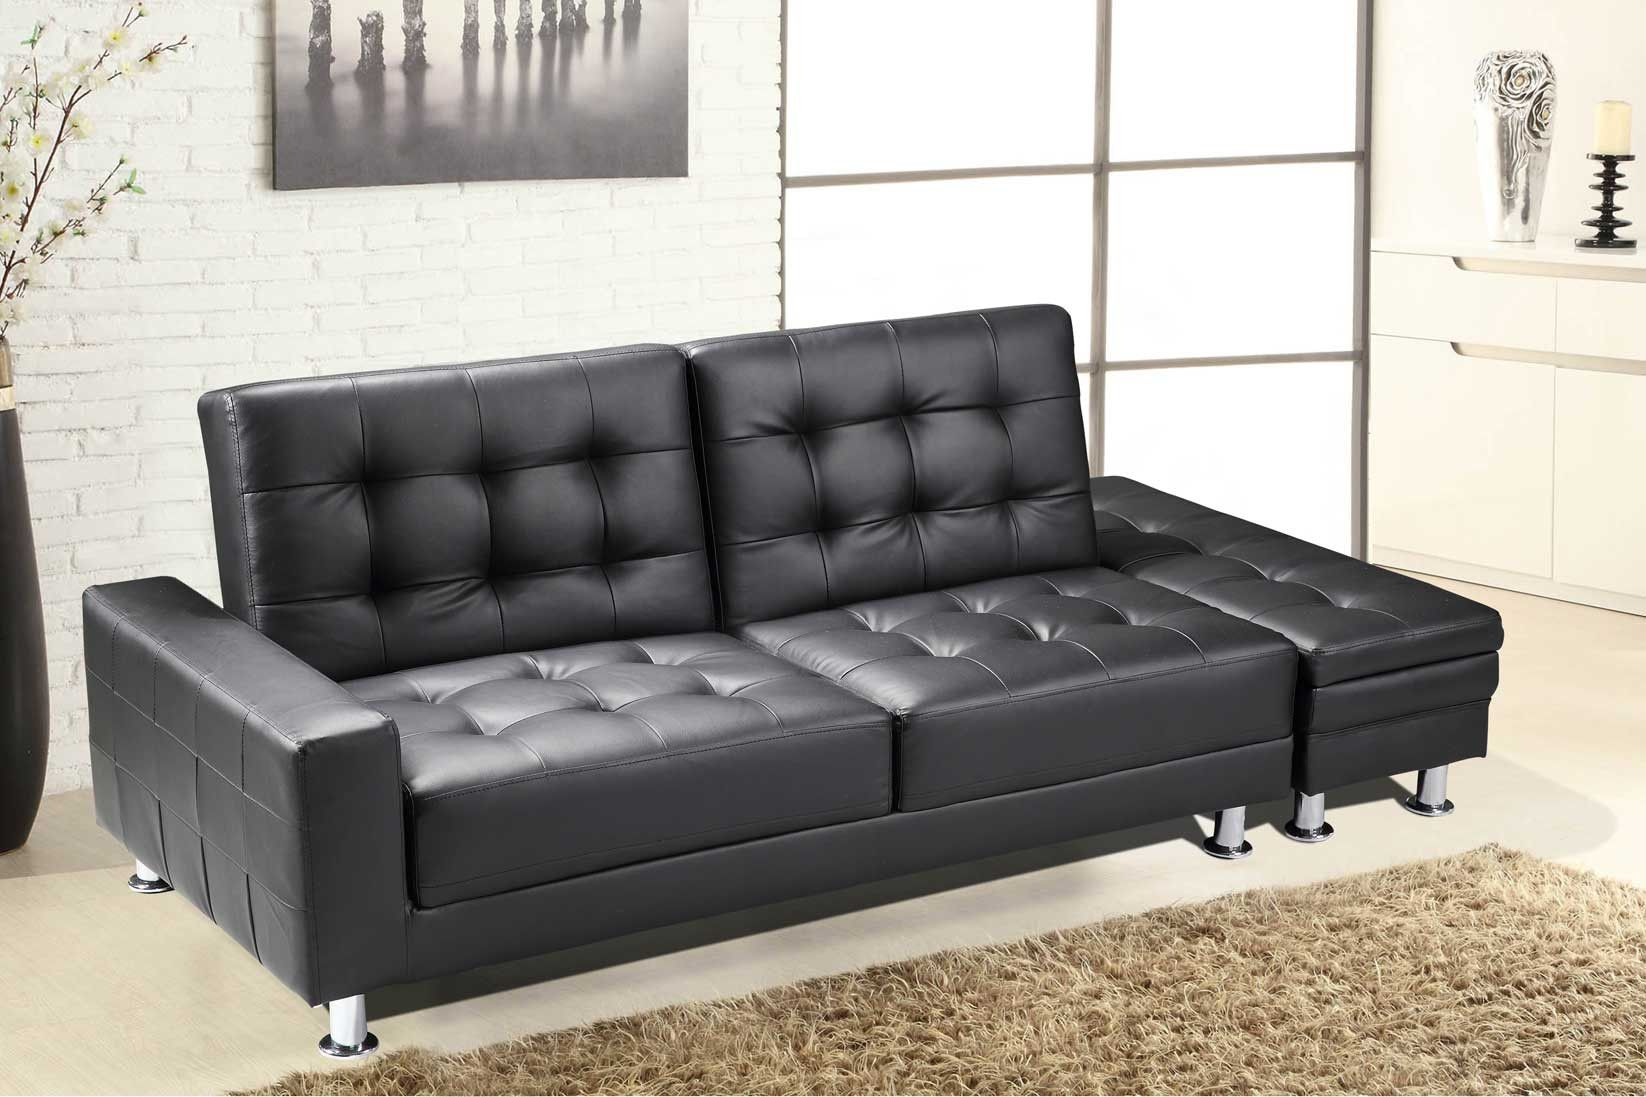 Brand new item Faux Leather Sofa... available to buy at